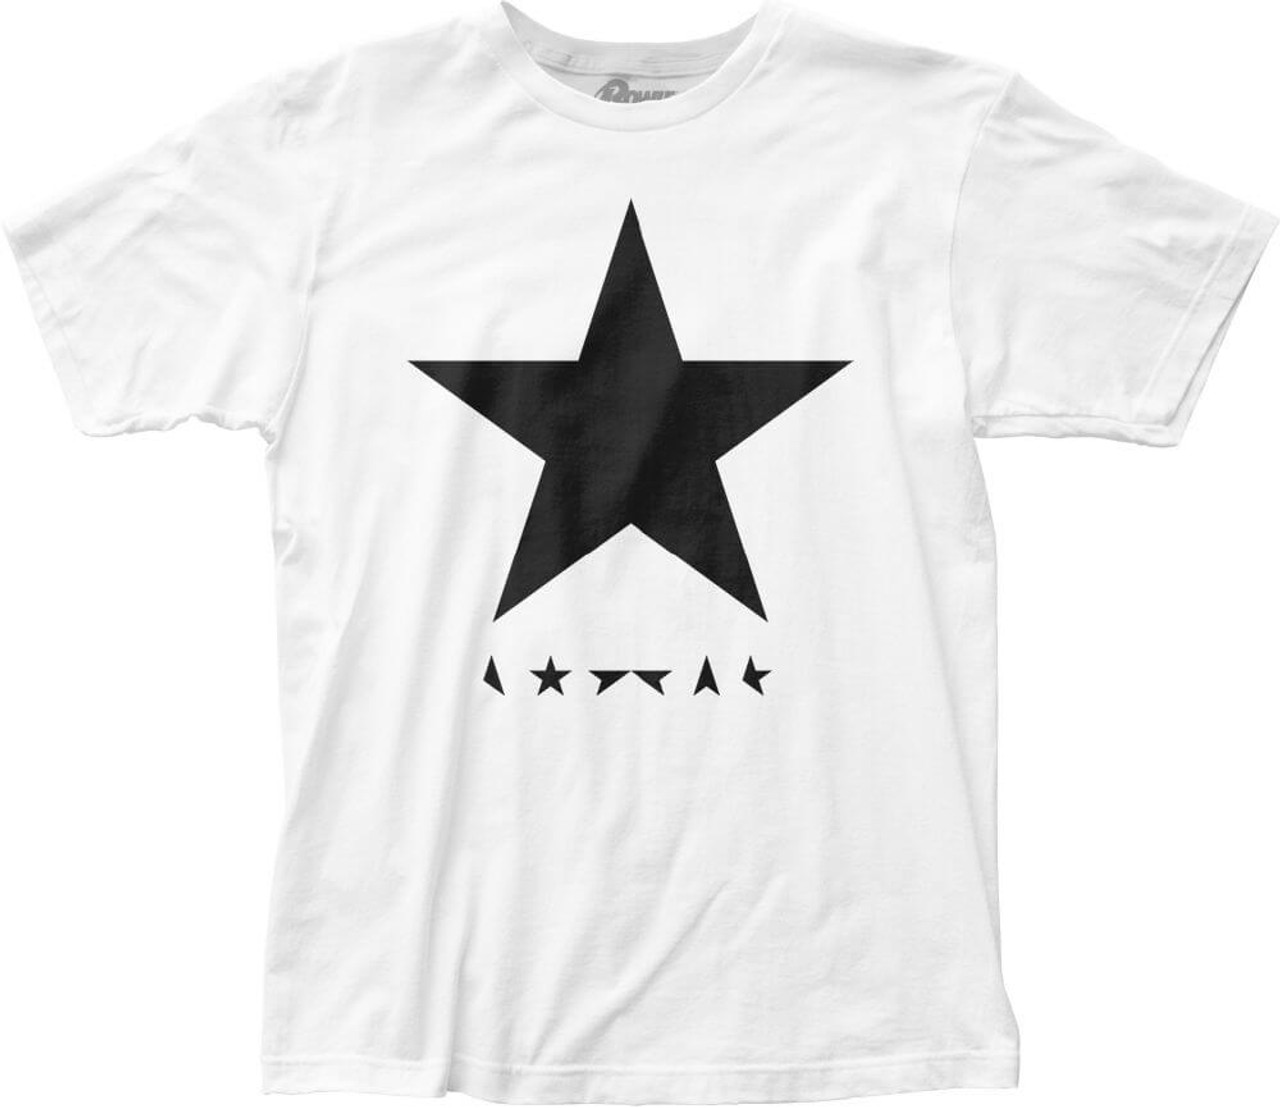 9b8b69638965 David Bowie Blackstar Album Cover Artwork Men's White T-shirt